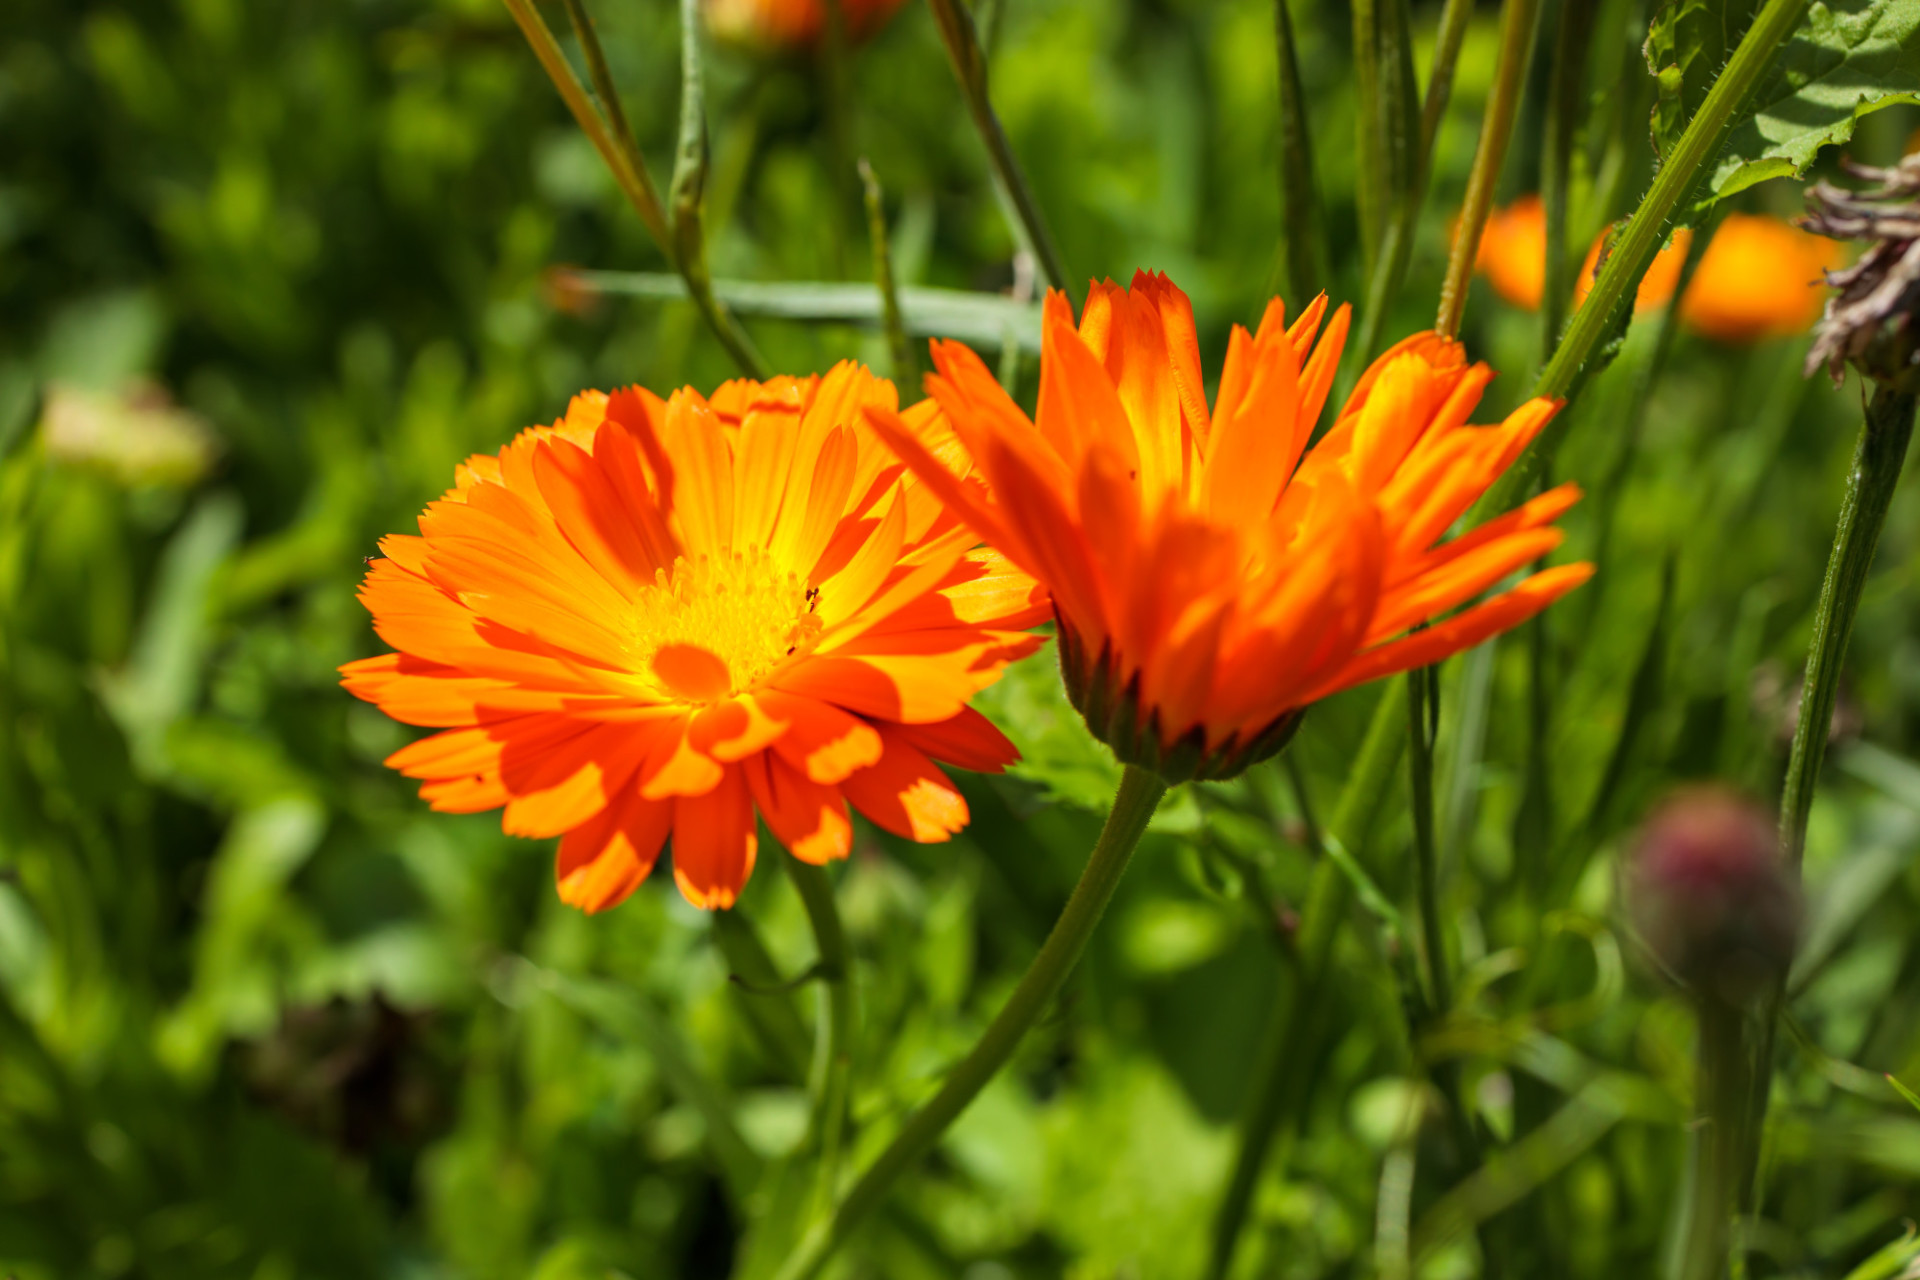 Two pretty marigolds in the summer sun